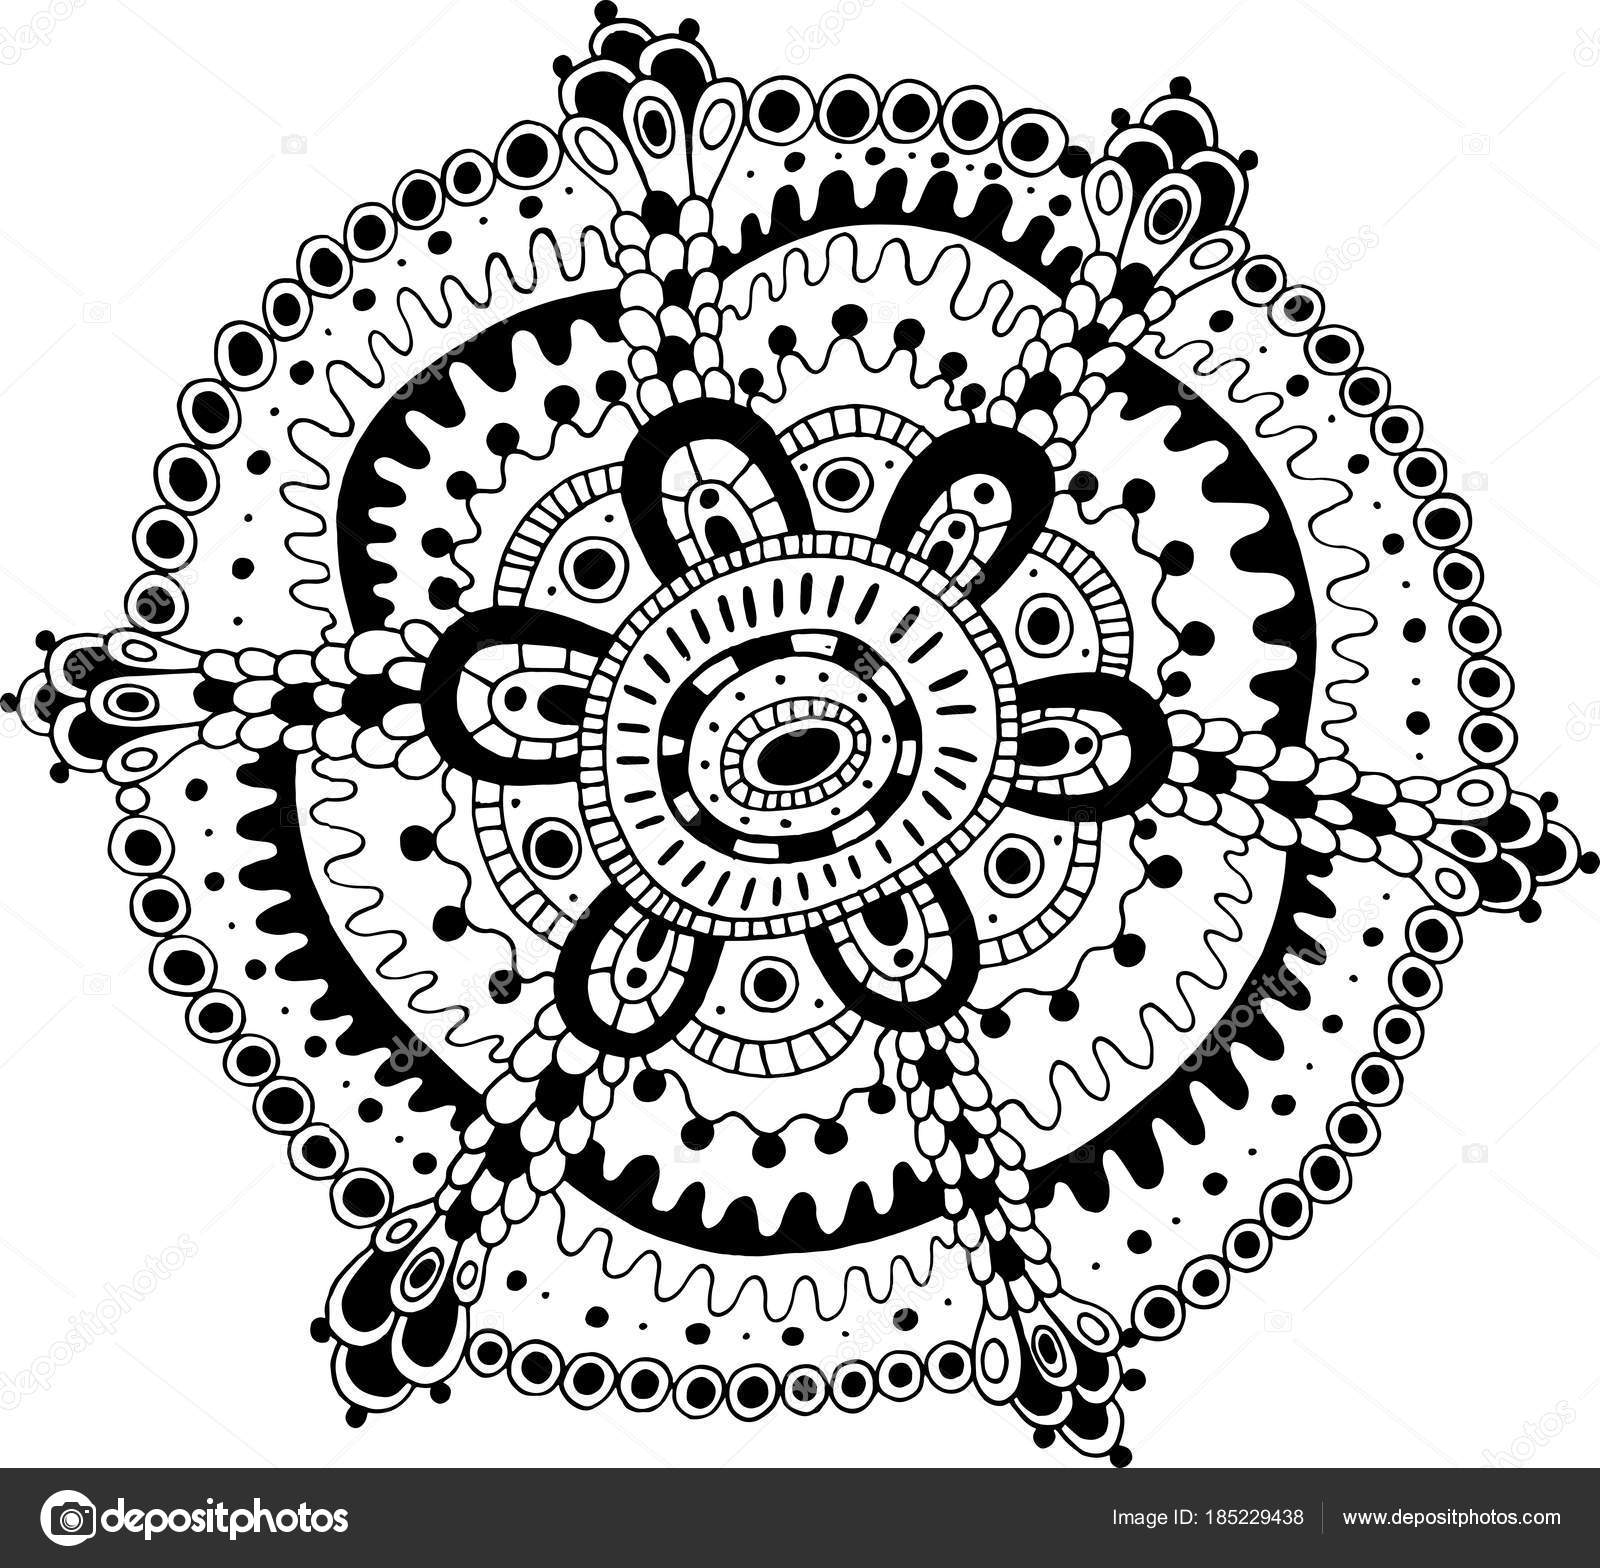 Doodle Mandala Coloring Page For Adults Cartoon Relax And Medit